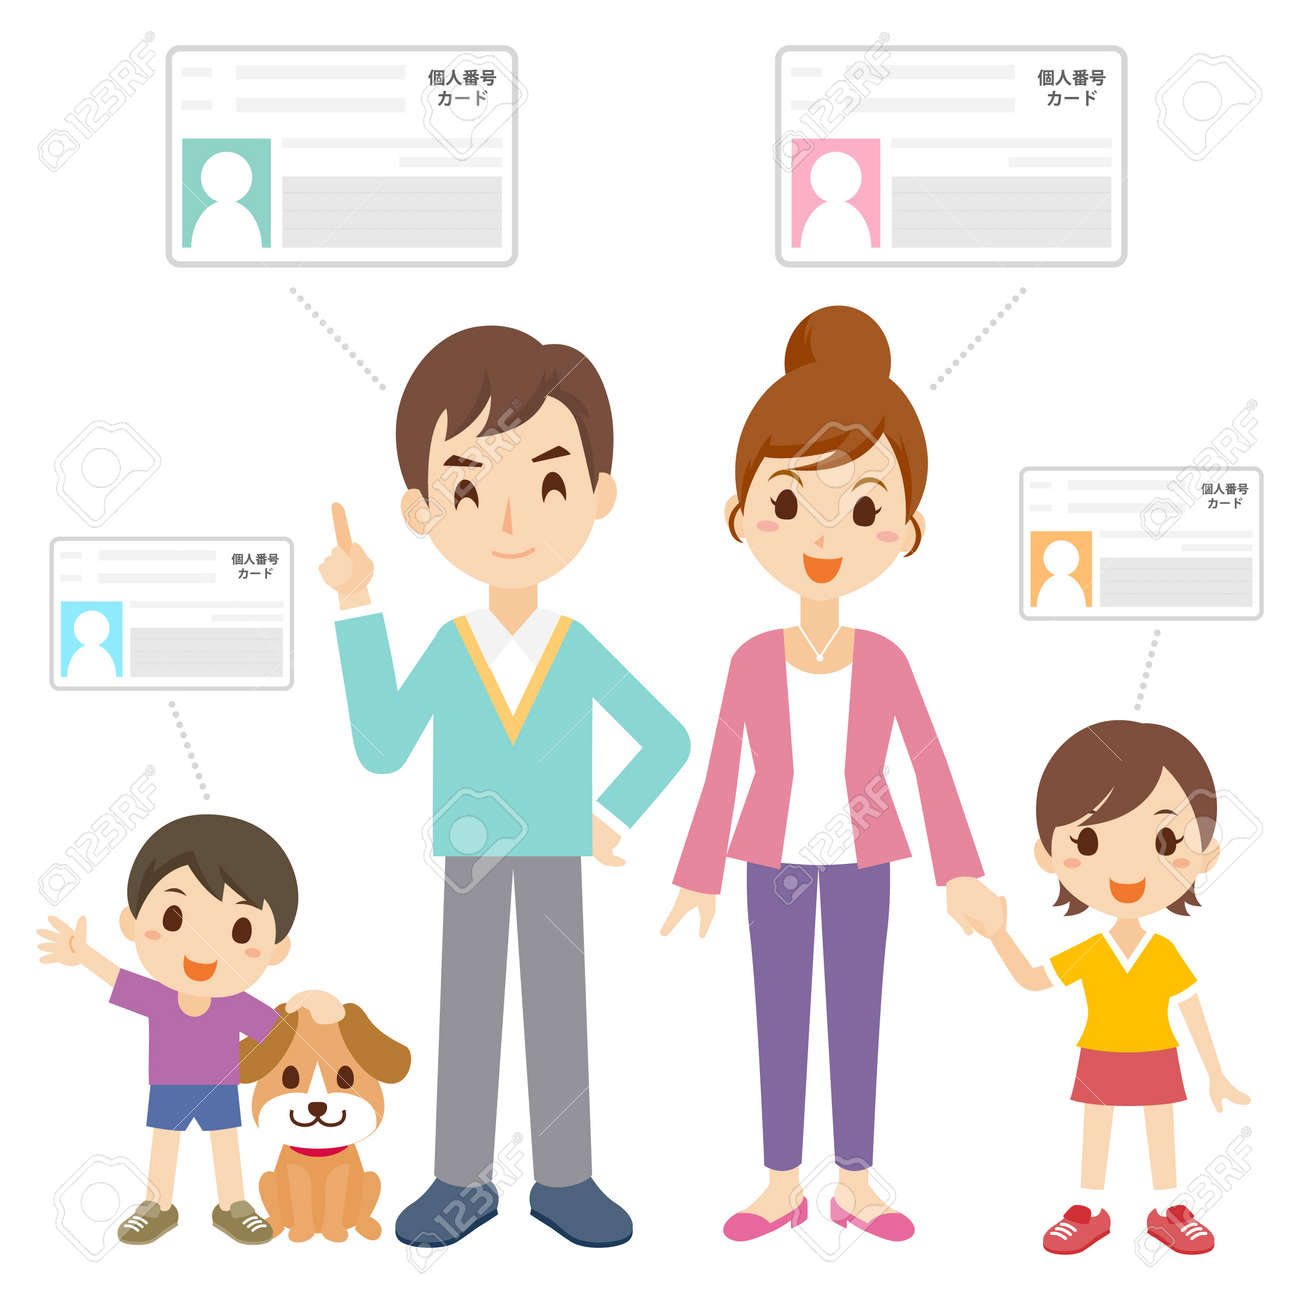 Family Certificate ID - 170087241